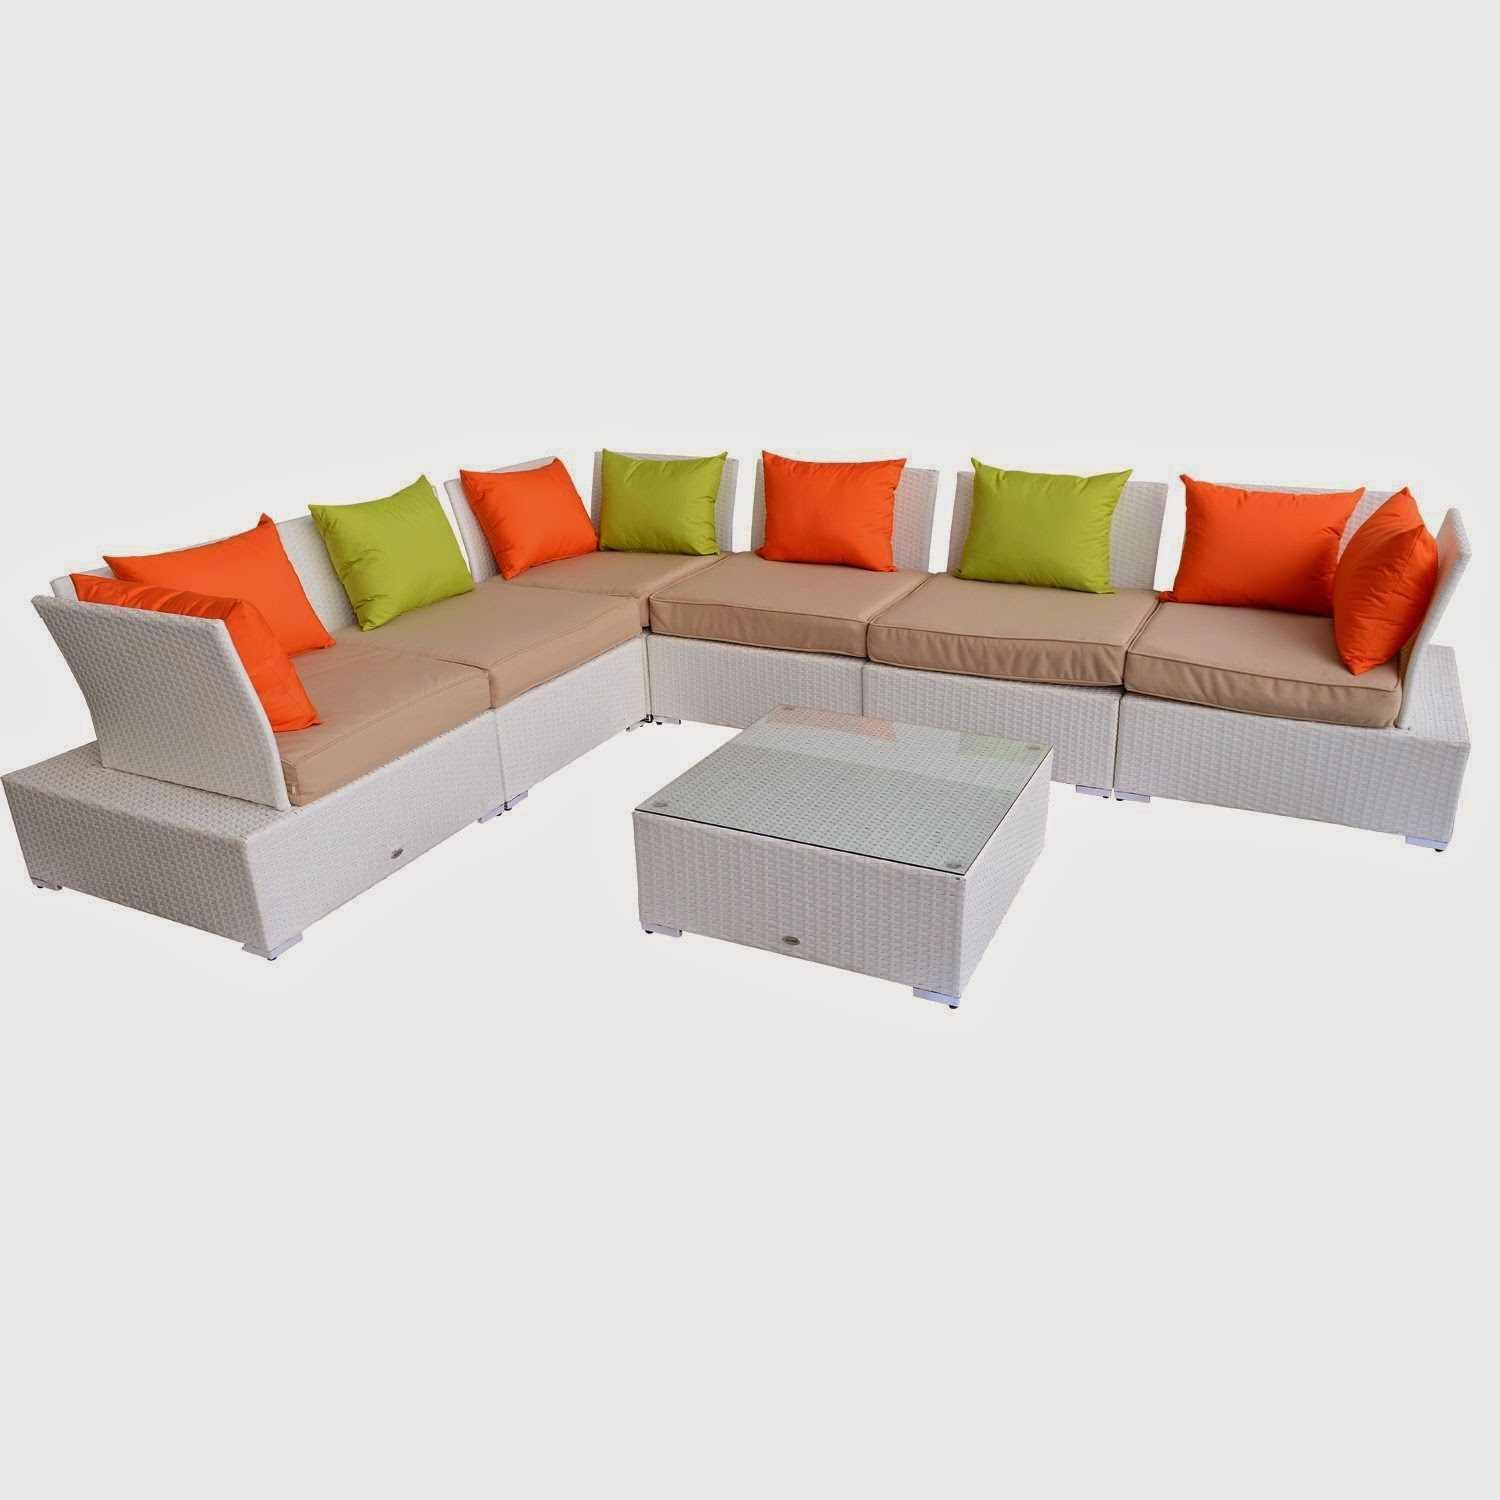 outdoor rattan wicker sofa sectional patio furniture set old sofas collected discount until 62 outsunny 7pc pe